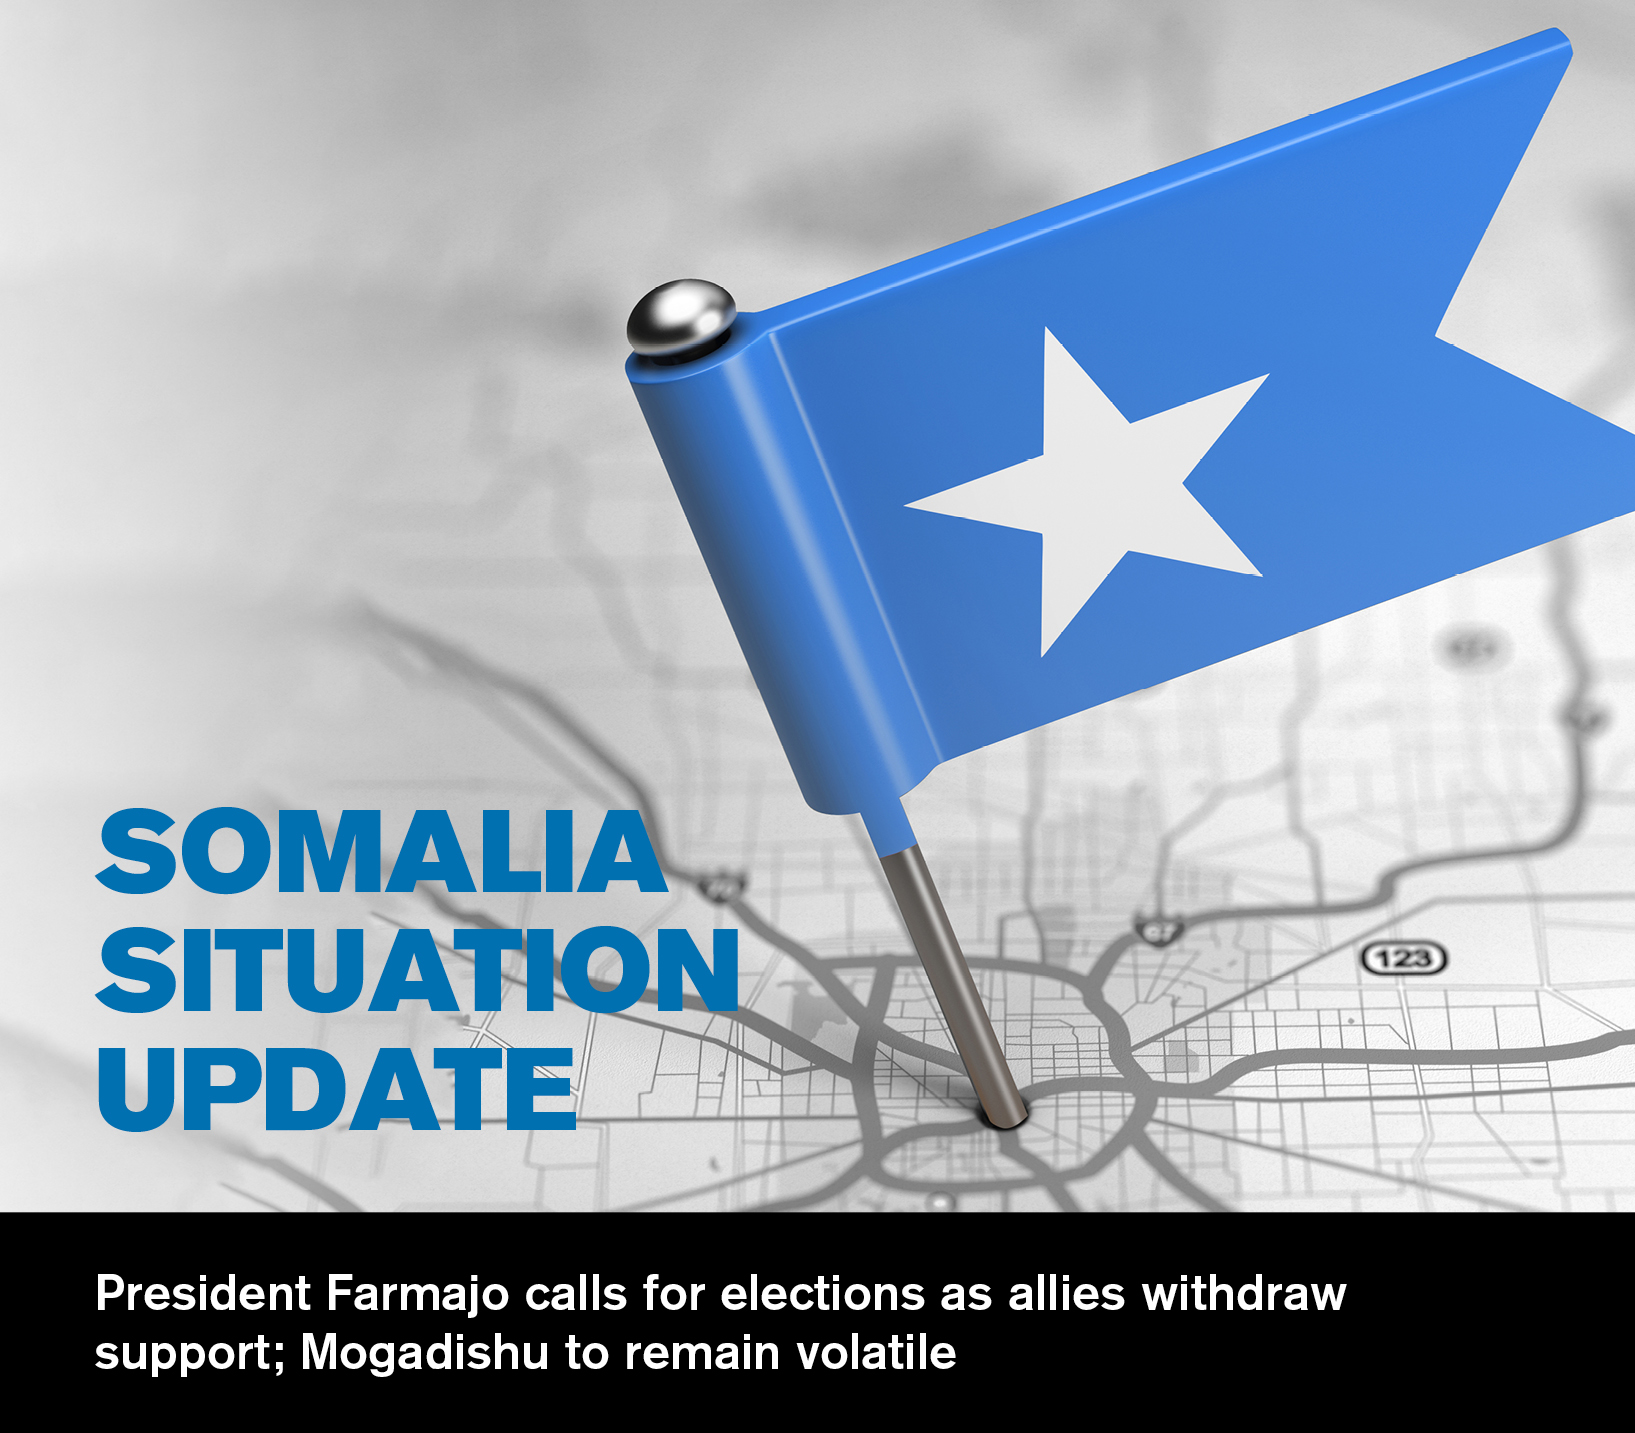 President Farmajo calls for elections as allies withdraw support; Mogadishu to remain volatile - Somalia Situation Analysis